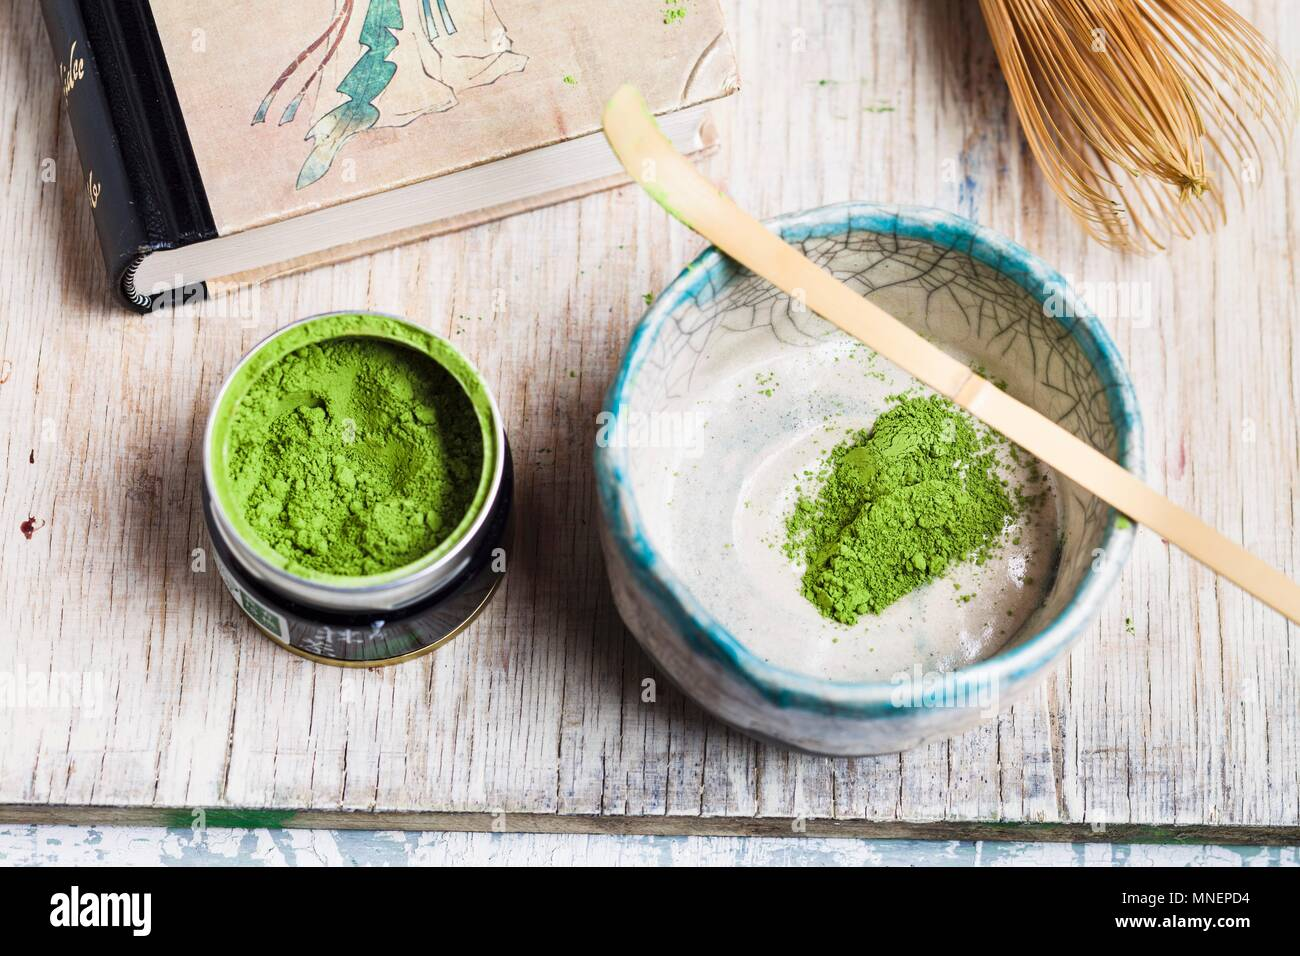 Matcha tea being prepared - Stock Image